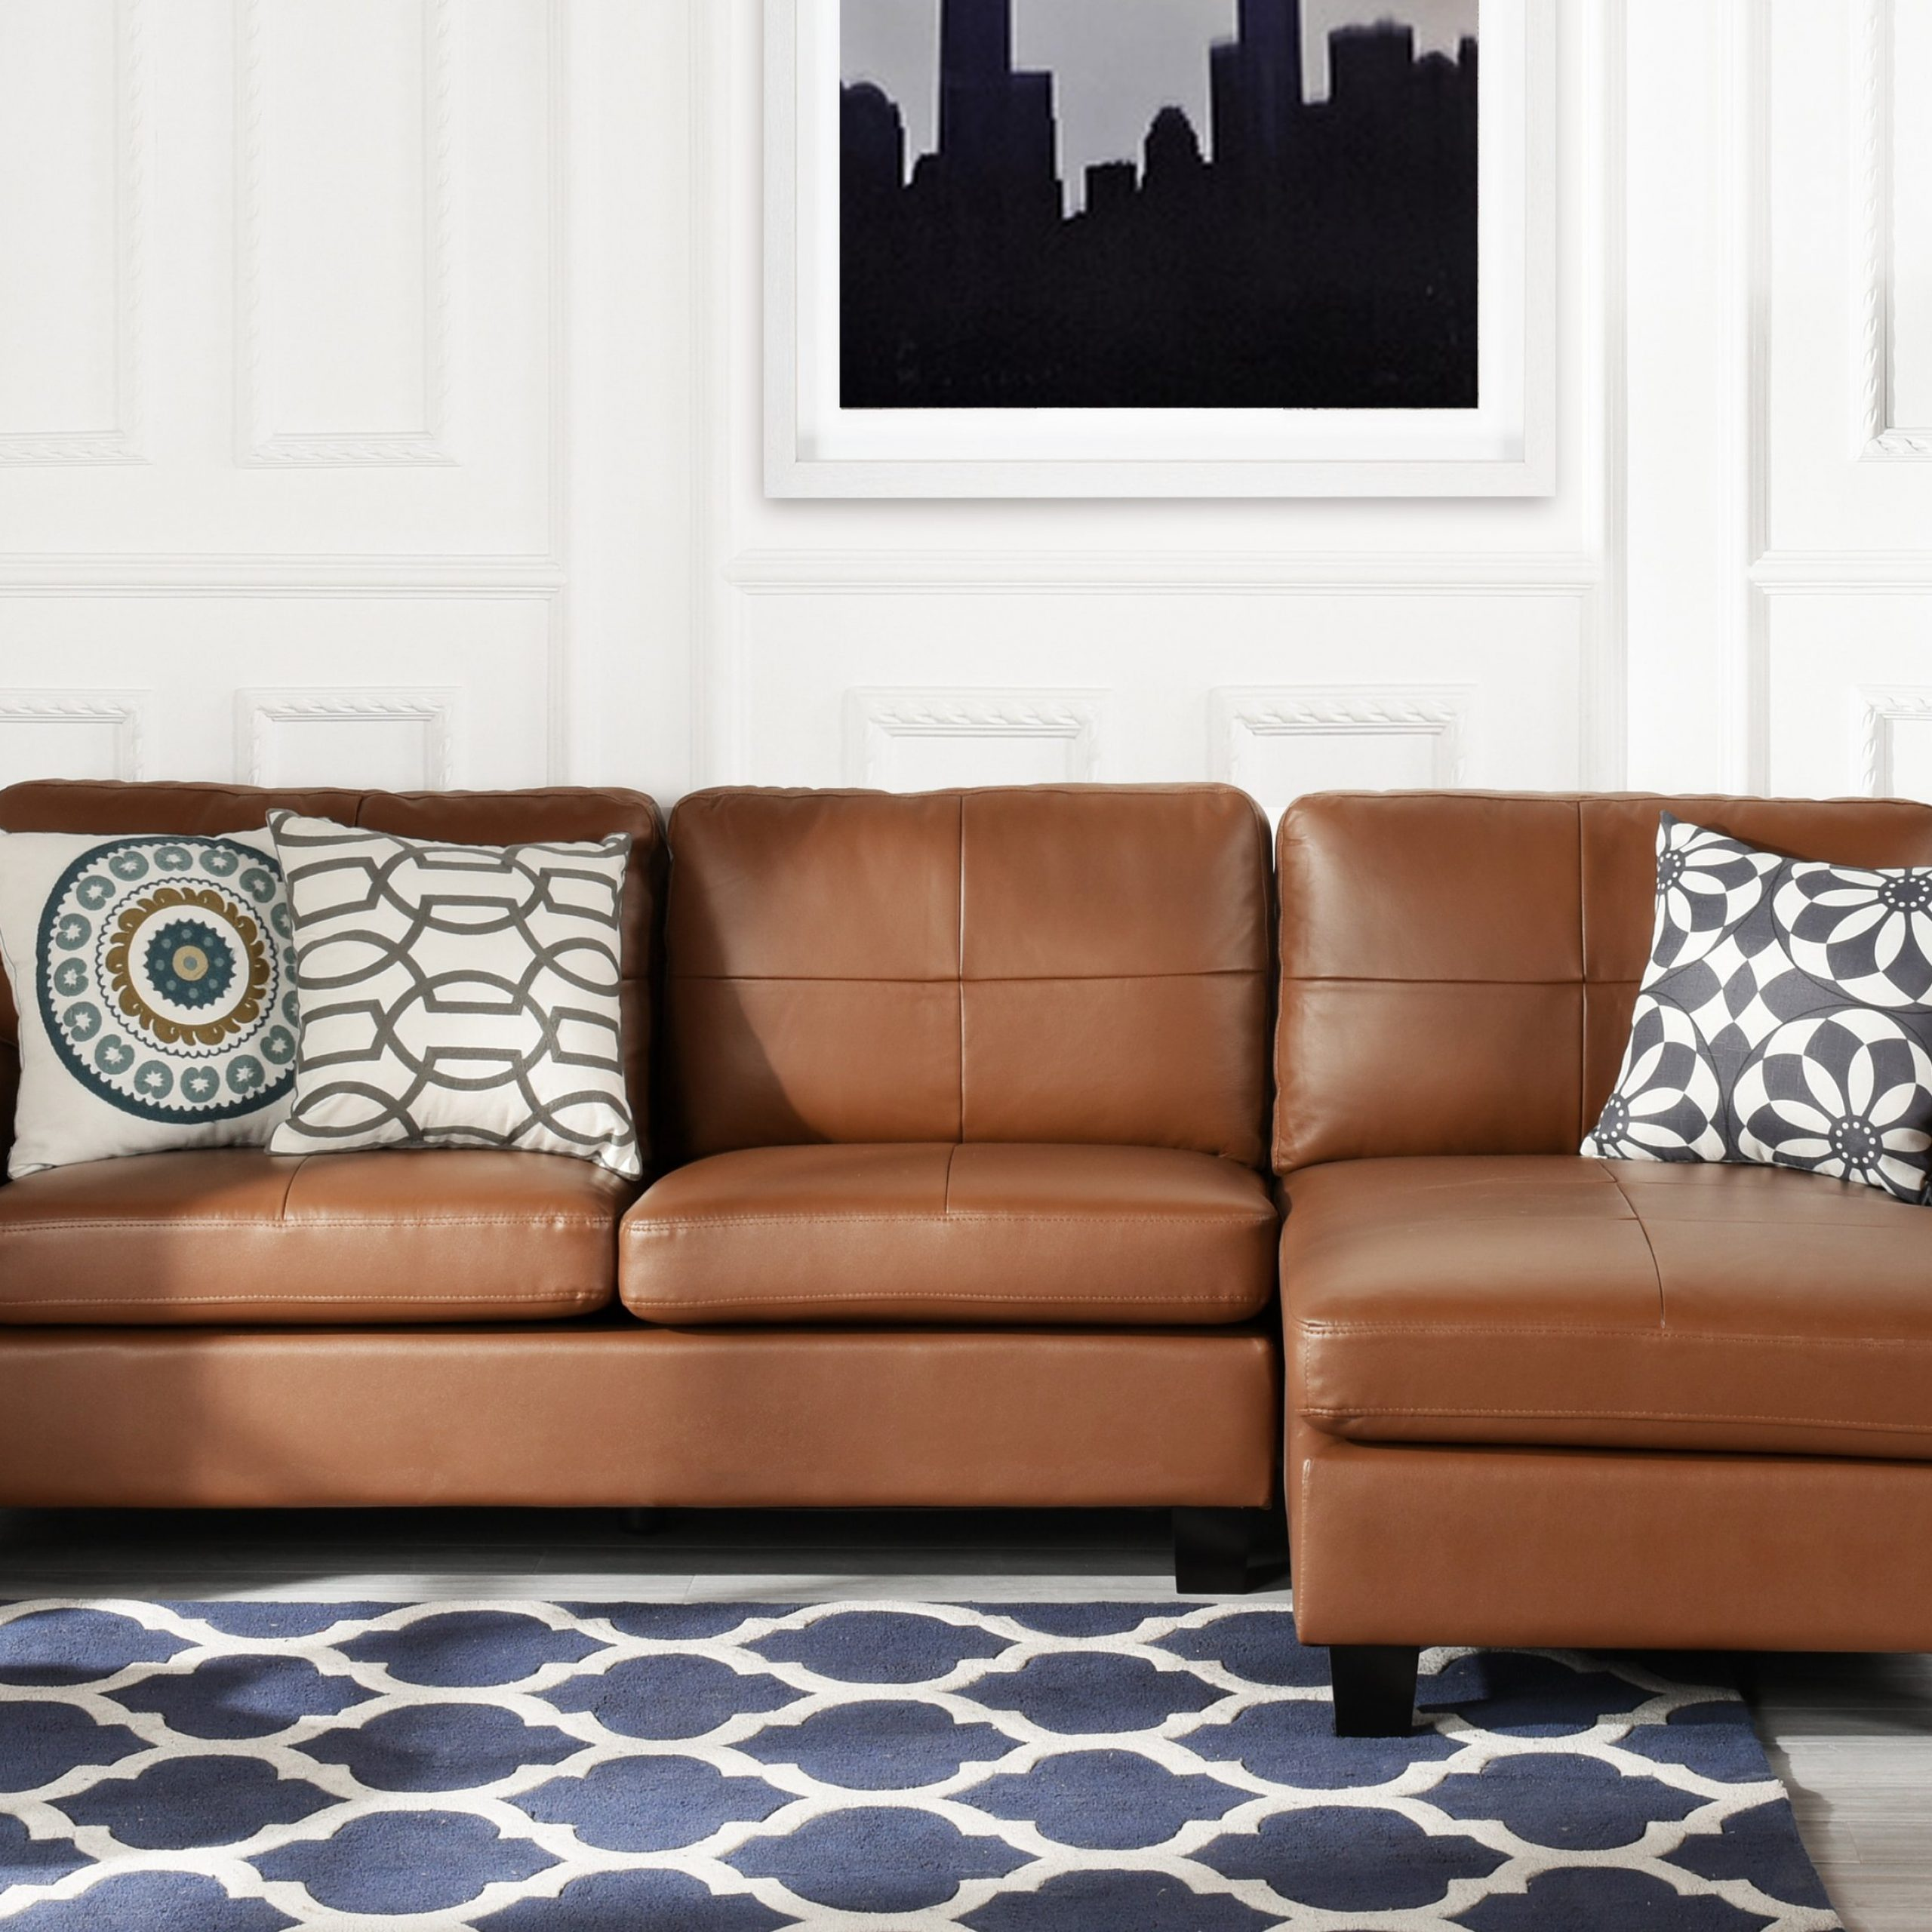 Light Brown Leather Match Upholstered Sectional Sofa, L For Lounge Sofas And Chairs (View 8 of 15)